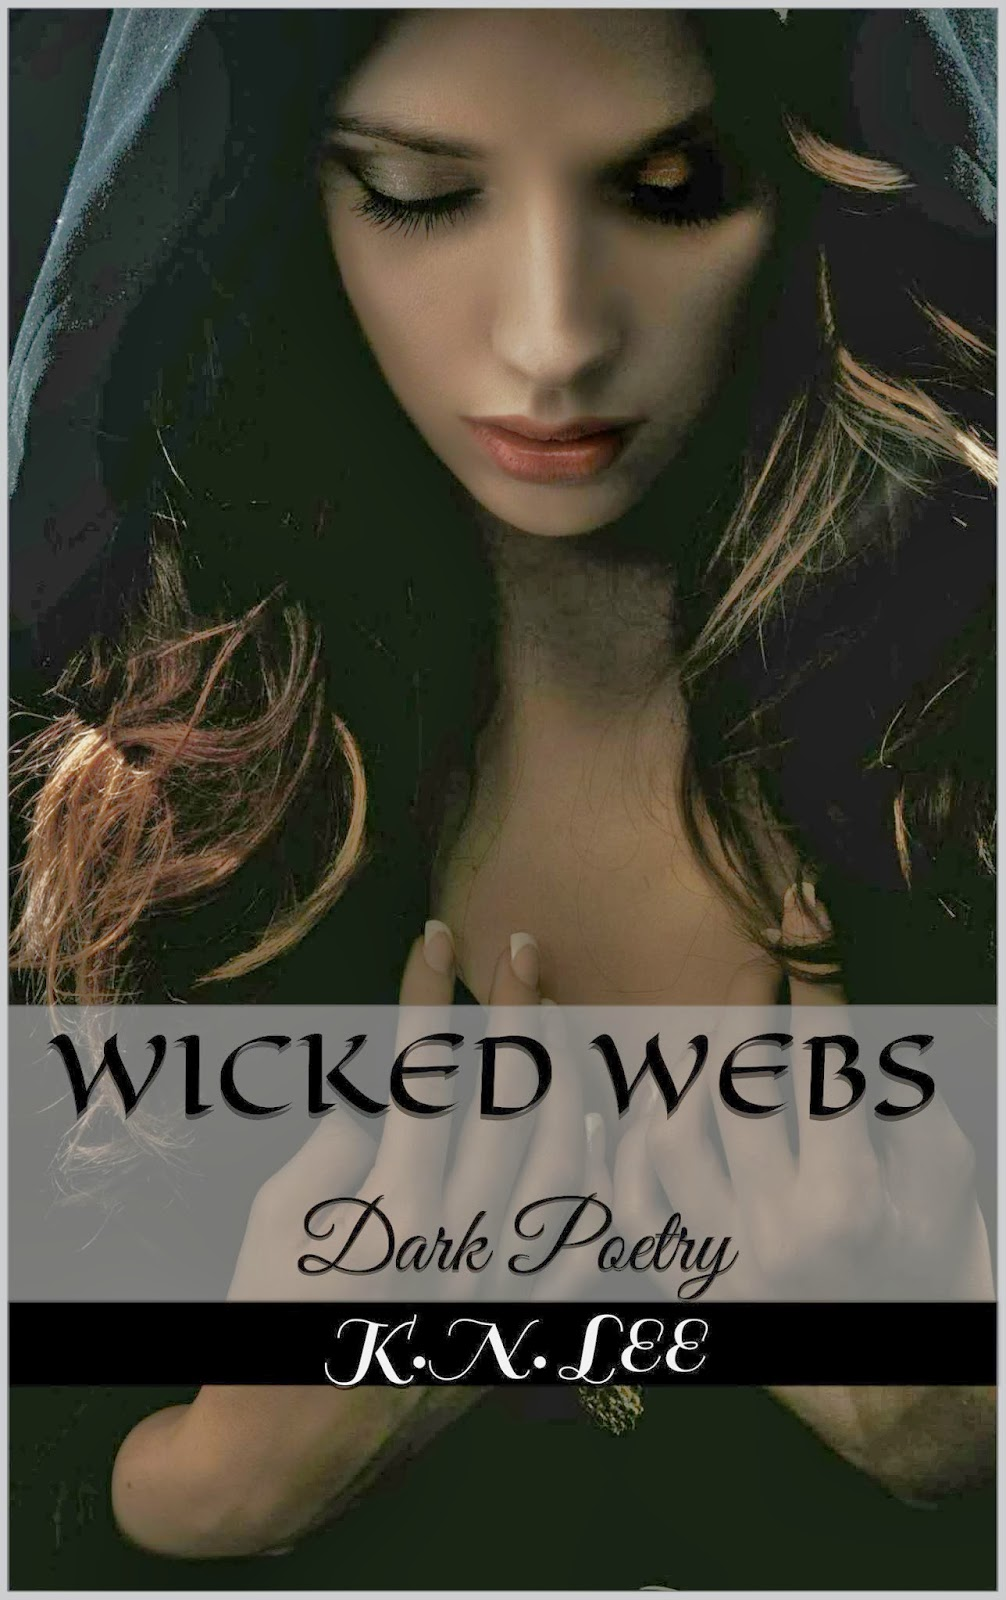 http://www.amazon.com/Wicked-Webs-K-N-Lee-ebook/dp/B00D9YCZGQ/ref=pd_sim_kstore_4?ie=UTF8&refRID=1X47B68TXKT82YKZAWQE